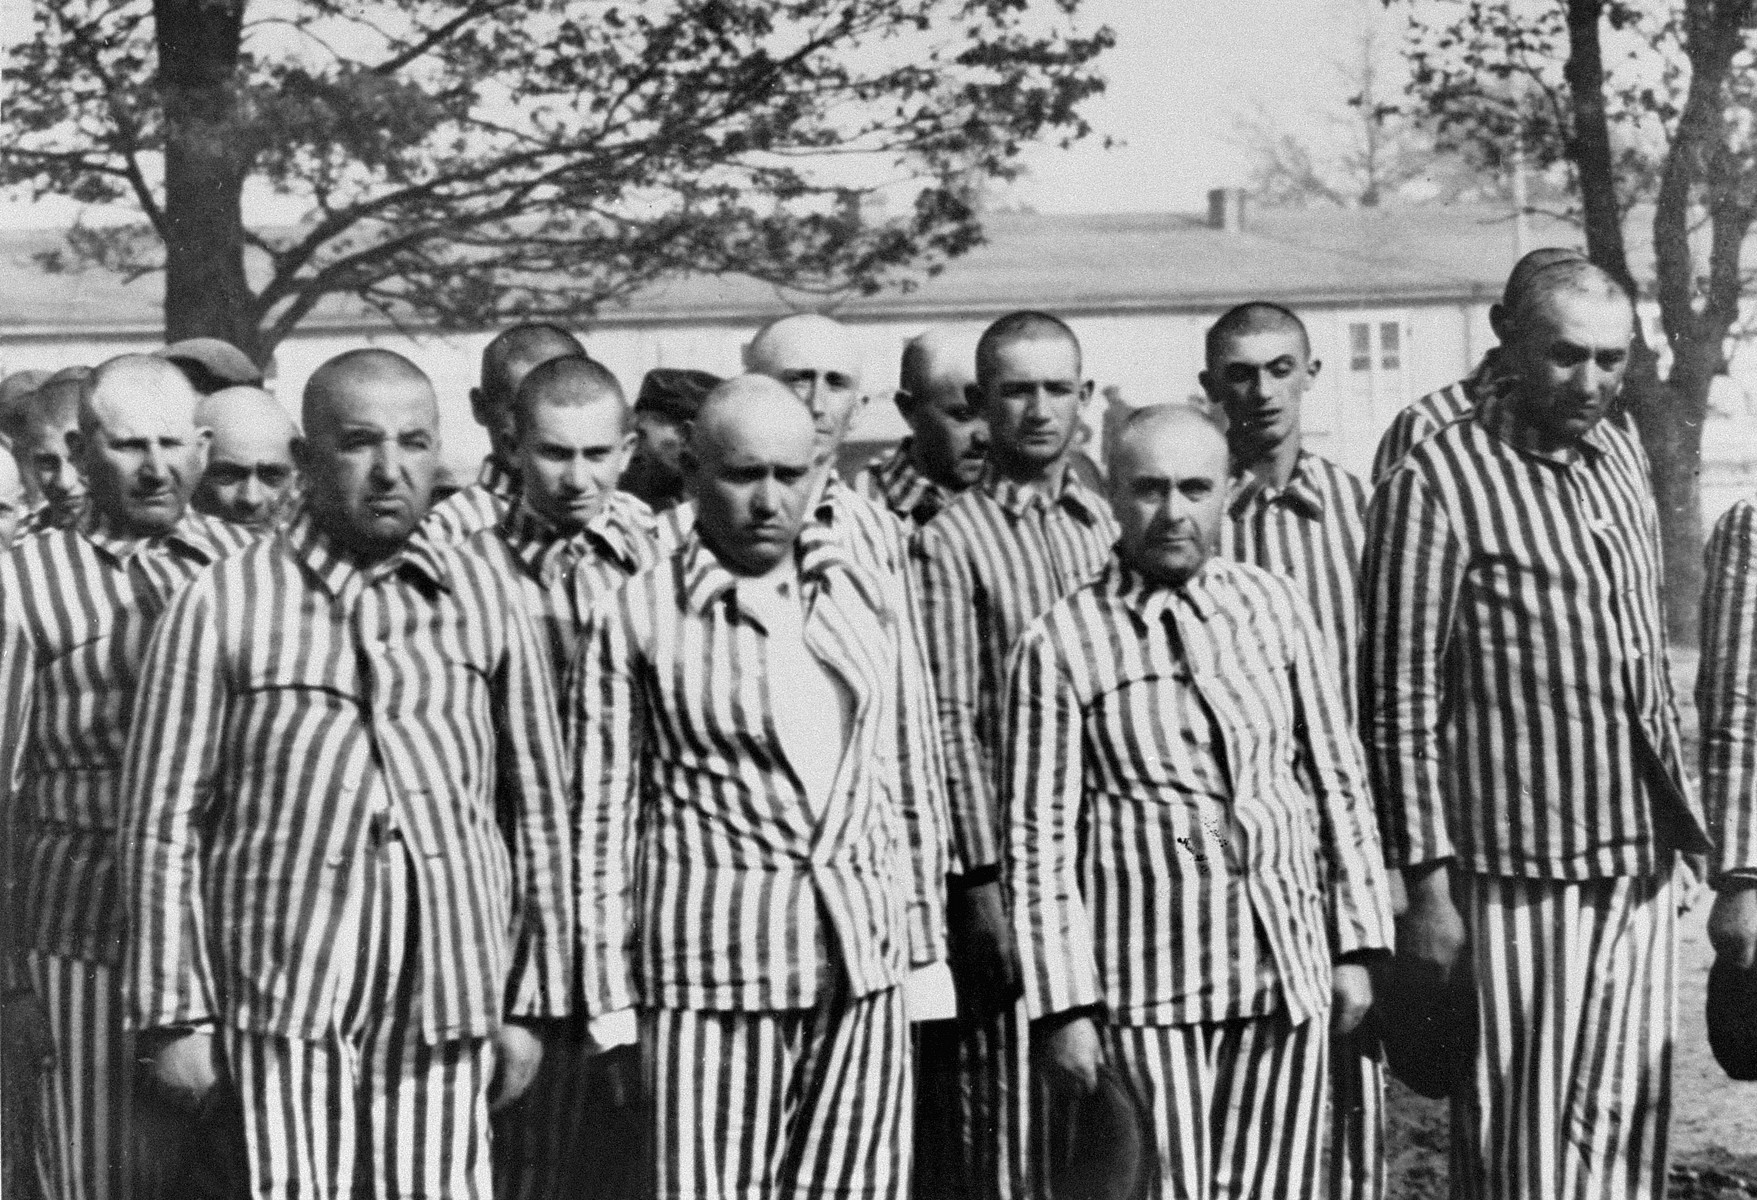 Jewish men from Subcarpathian Rus who have been selected for forced labor at Auschwitz-Birkenau, stand in their newly-issued prison uniforms at a roll call.   Among those pictured are the butcher Salomon Lazar (second row, far left), the pharmacist Istvan Balaszo from Tecso (front row, third from the left), Shimshon Falkovics (back, center), Moshe Vogel (second from the right) and Shmuel Yitzhak Smilovics of Tacavo (far right).